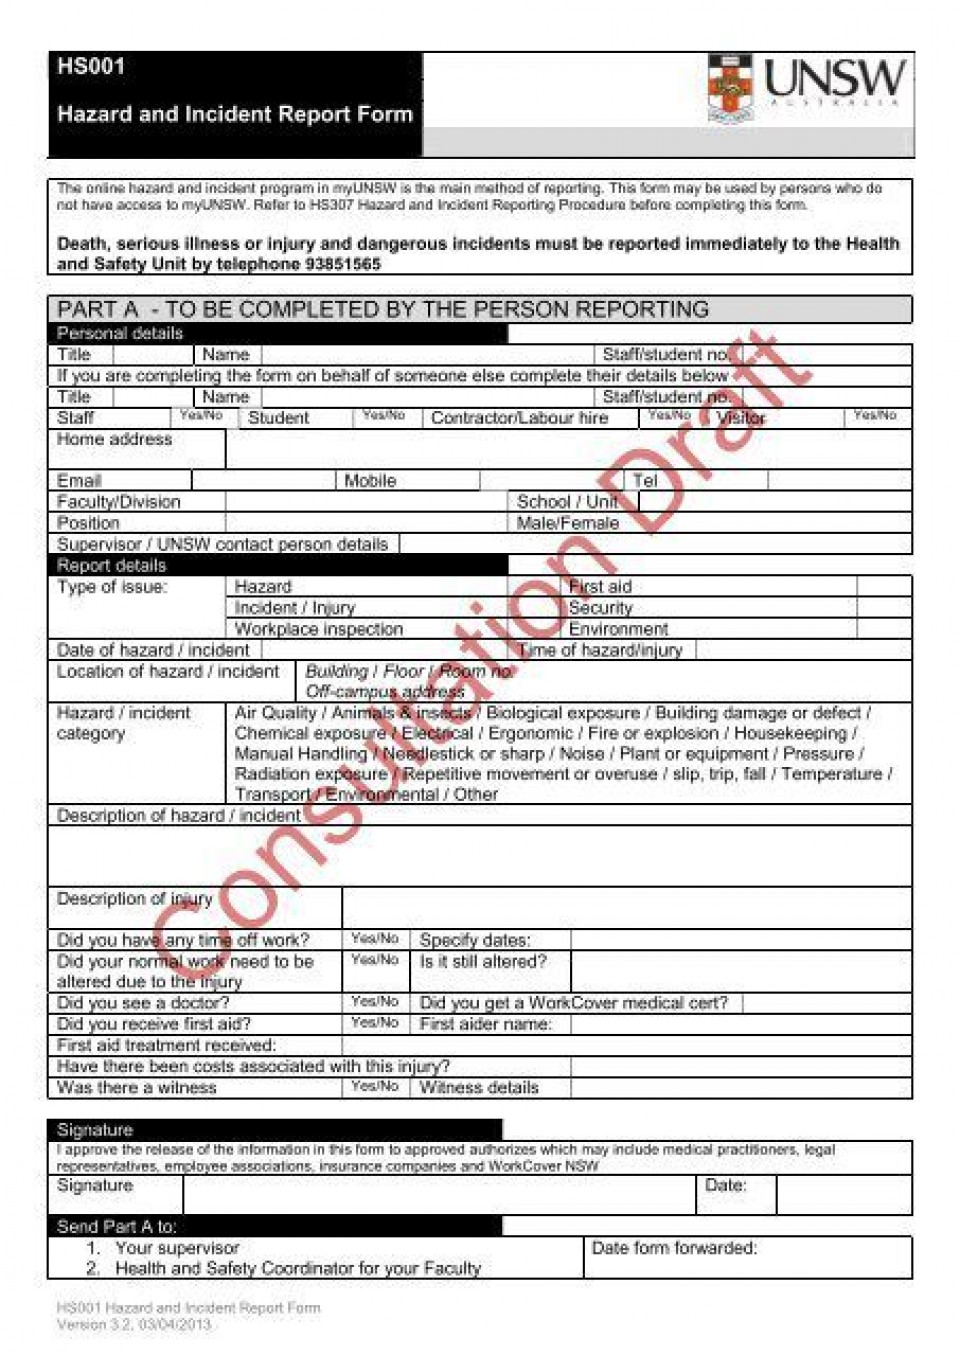 004 Stupendou Workplace Incident Report Form Nsw Design  Template960